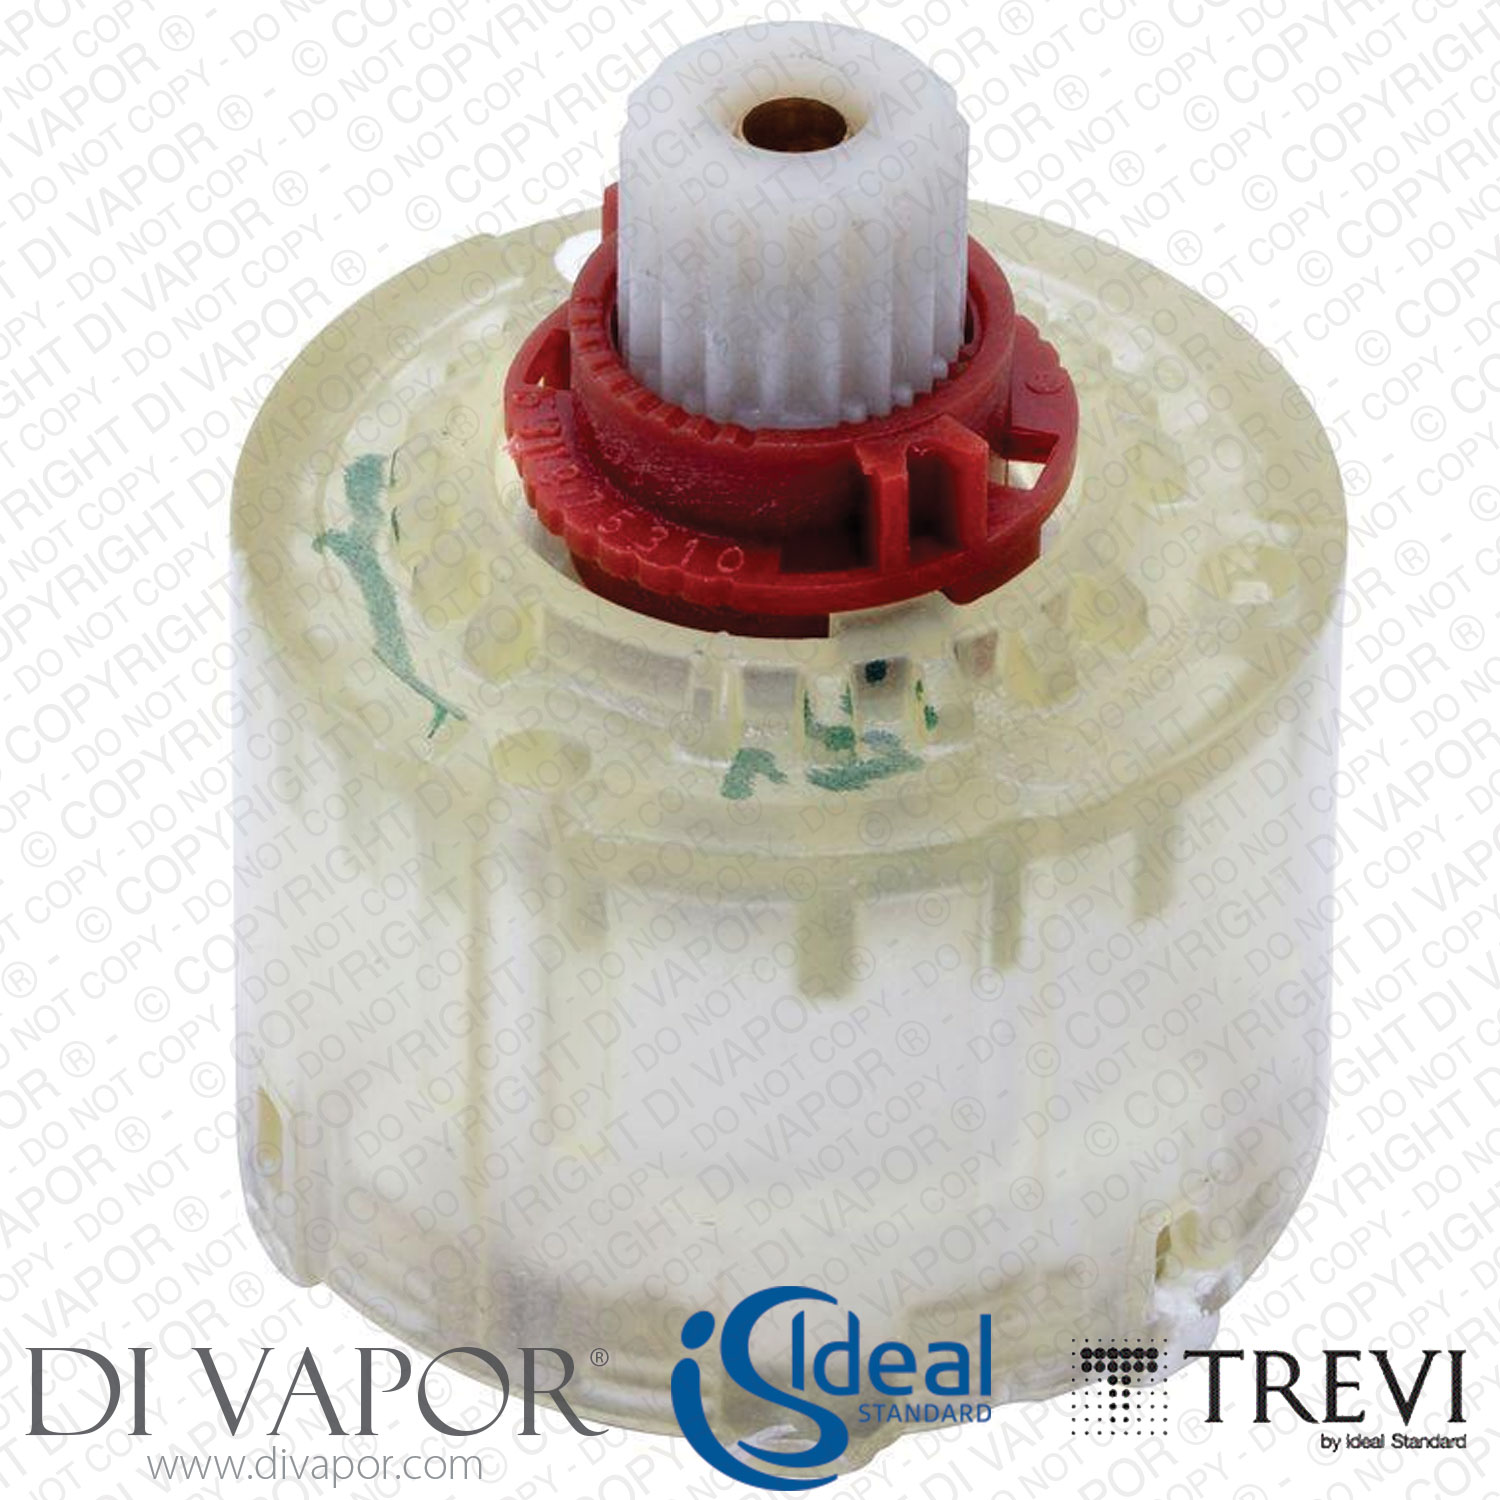 A954440nu Ideal Standard Trevi Sequential Cycle Valve